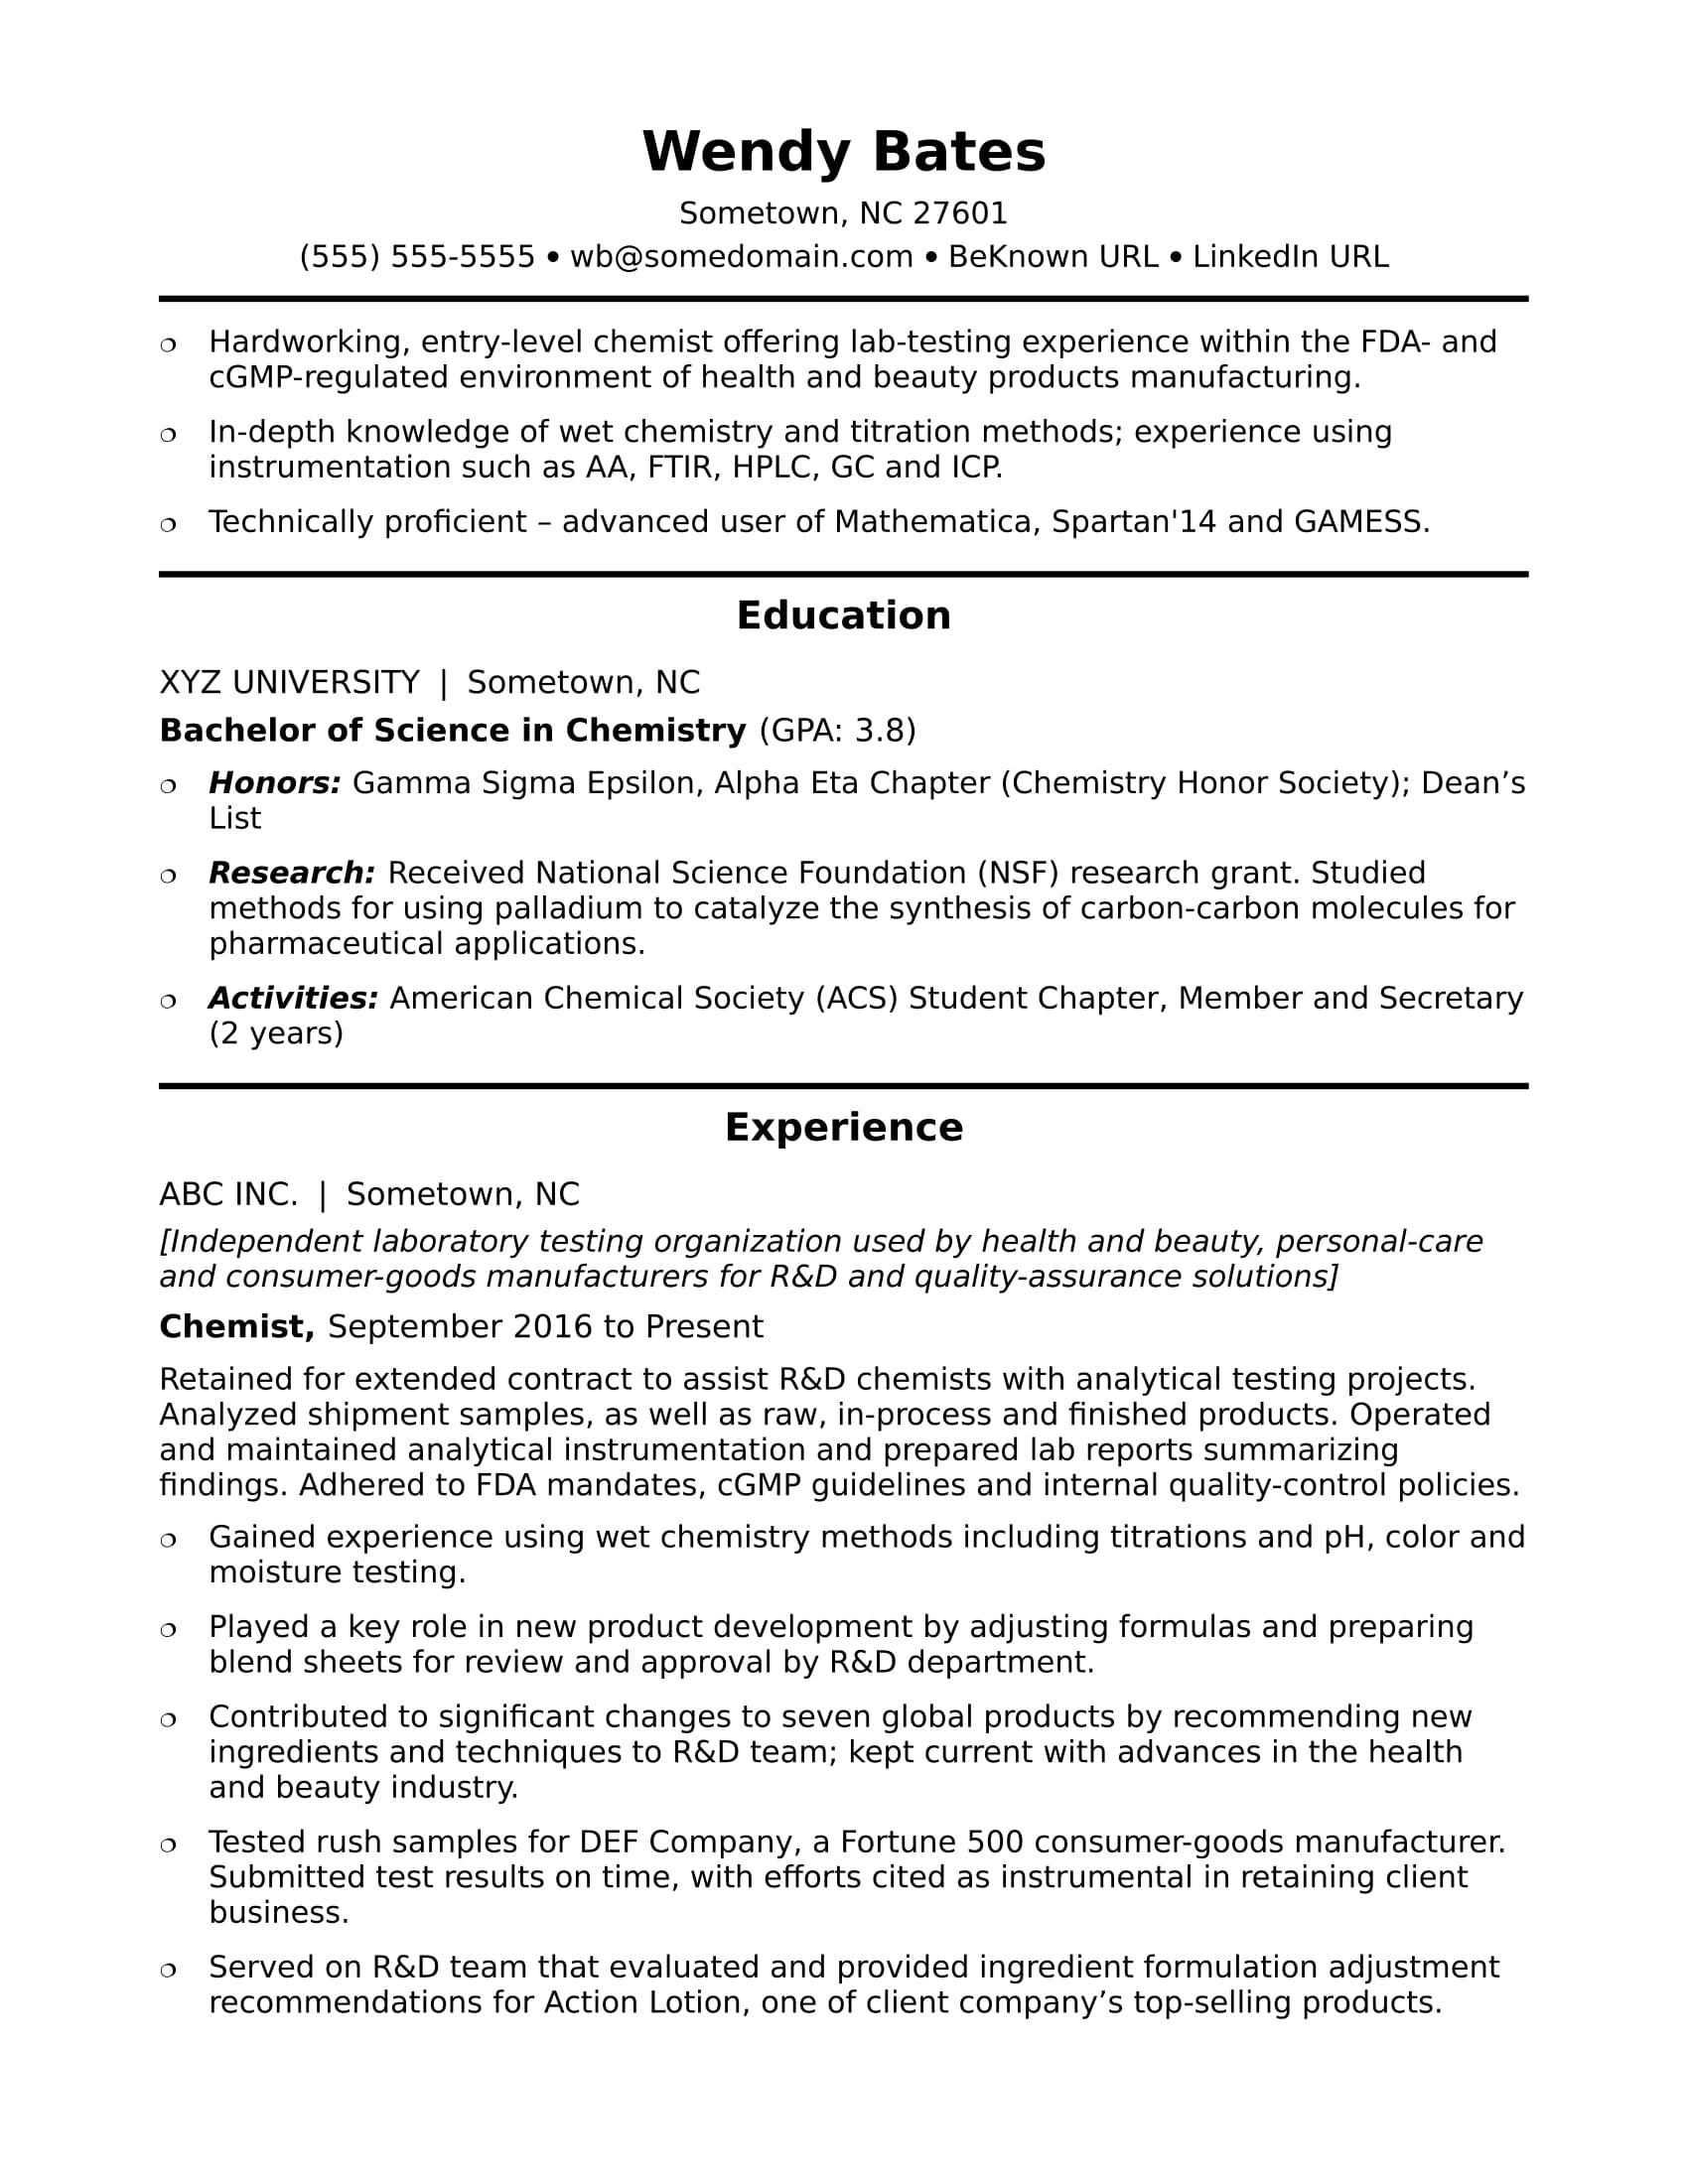 Sample Resume For An Entry Level Chemist  Resume Example Education